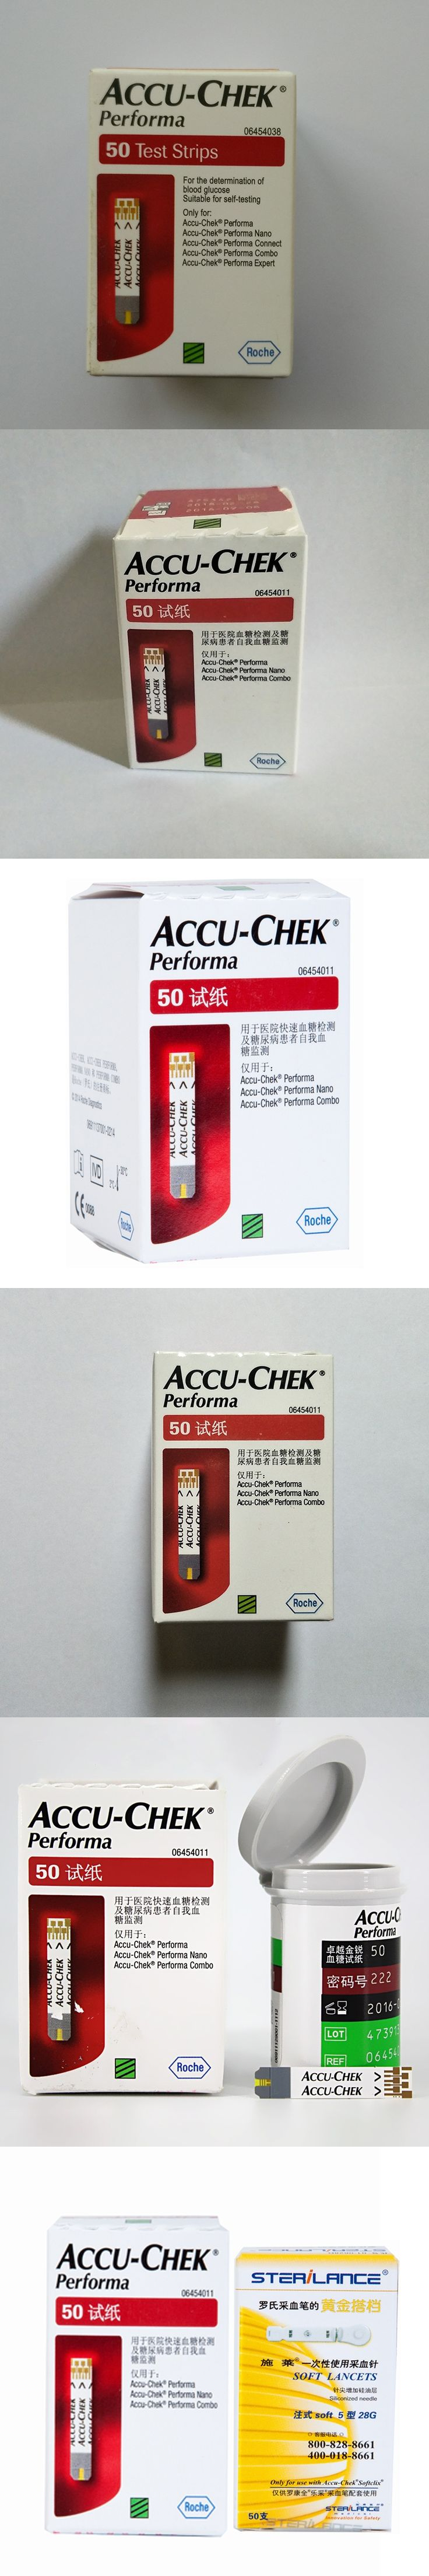 Hot Sale Accu-Chek Performa Blood Glucose Meter Test Strips 50pcs with Expiry 02. 2018 + Free Lancets 50pcs For Health Care